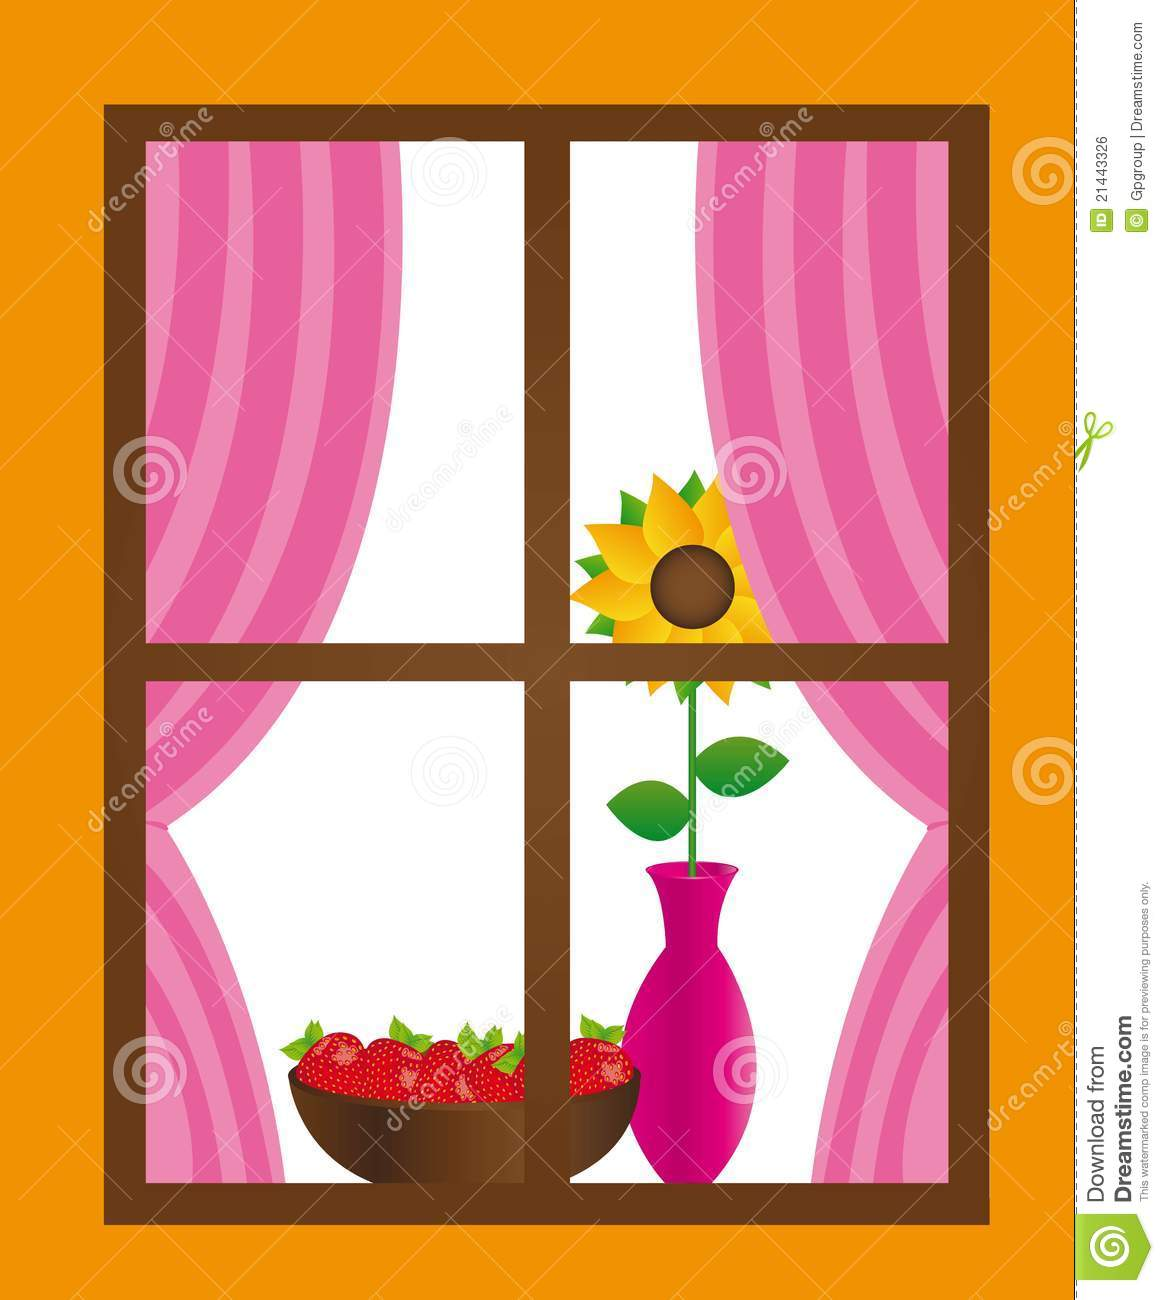 Window Vector Royalty Free Stock Image Image 21443326